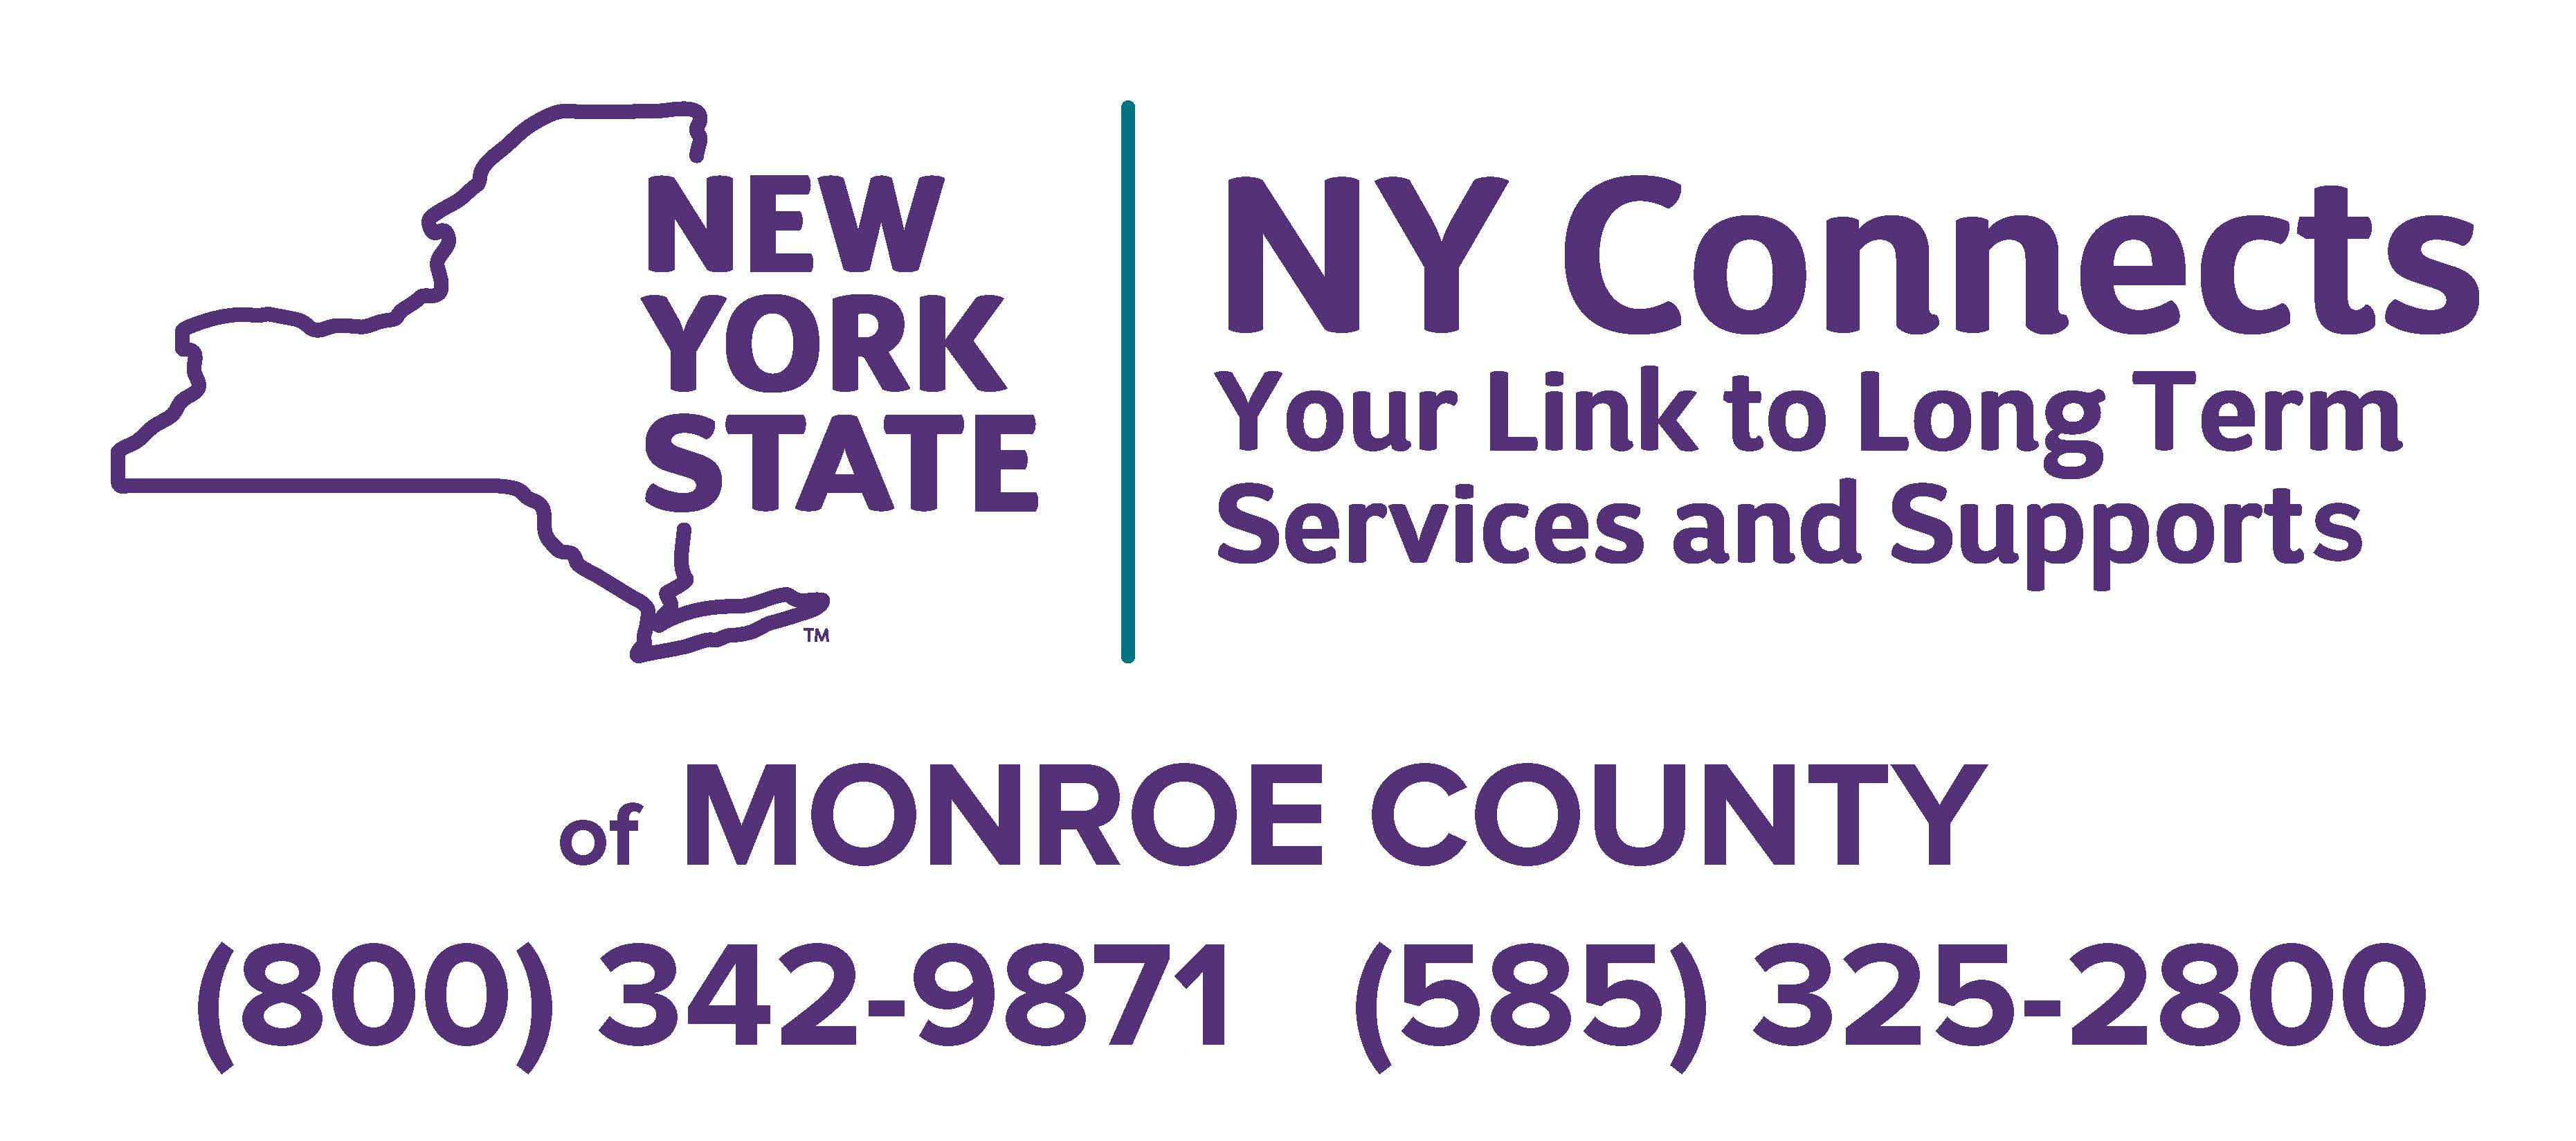 NY Connects of Monroe County, Your Link to Long Term Services and Supports - (800) 342-9871 or (585) 325-2800